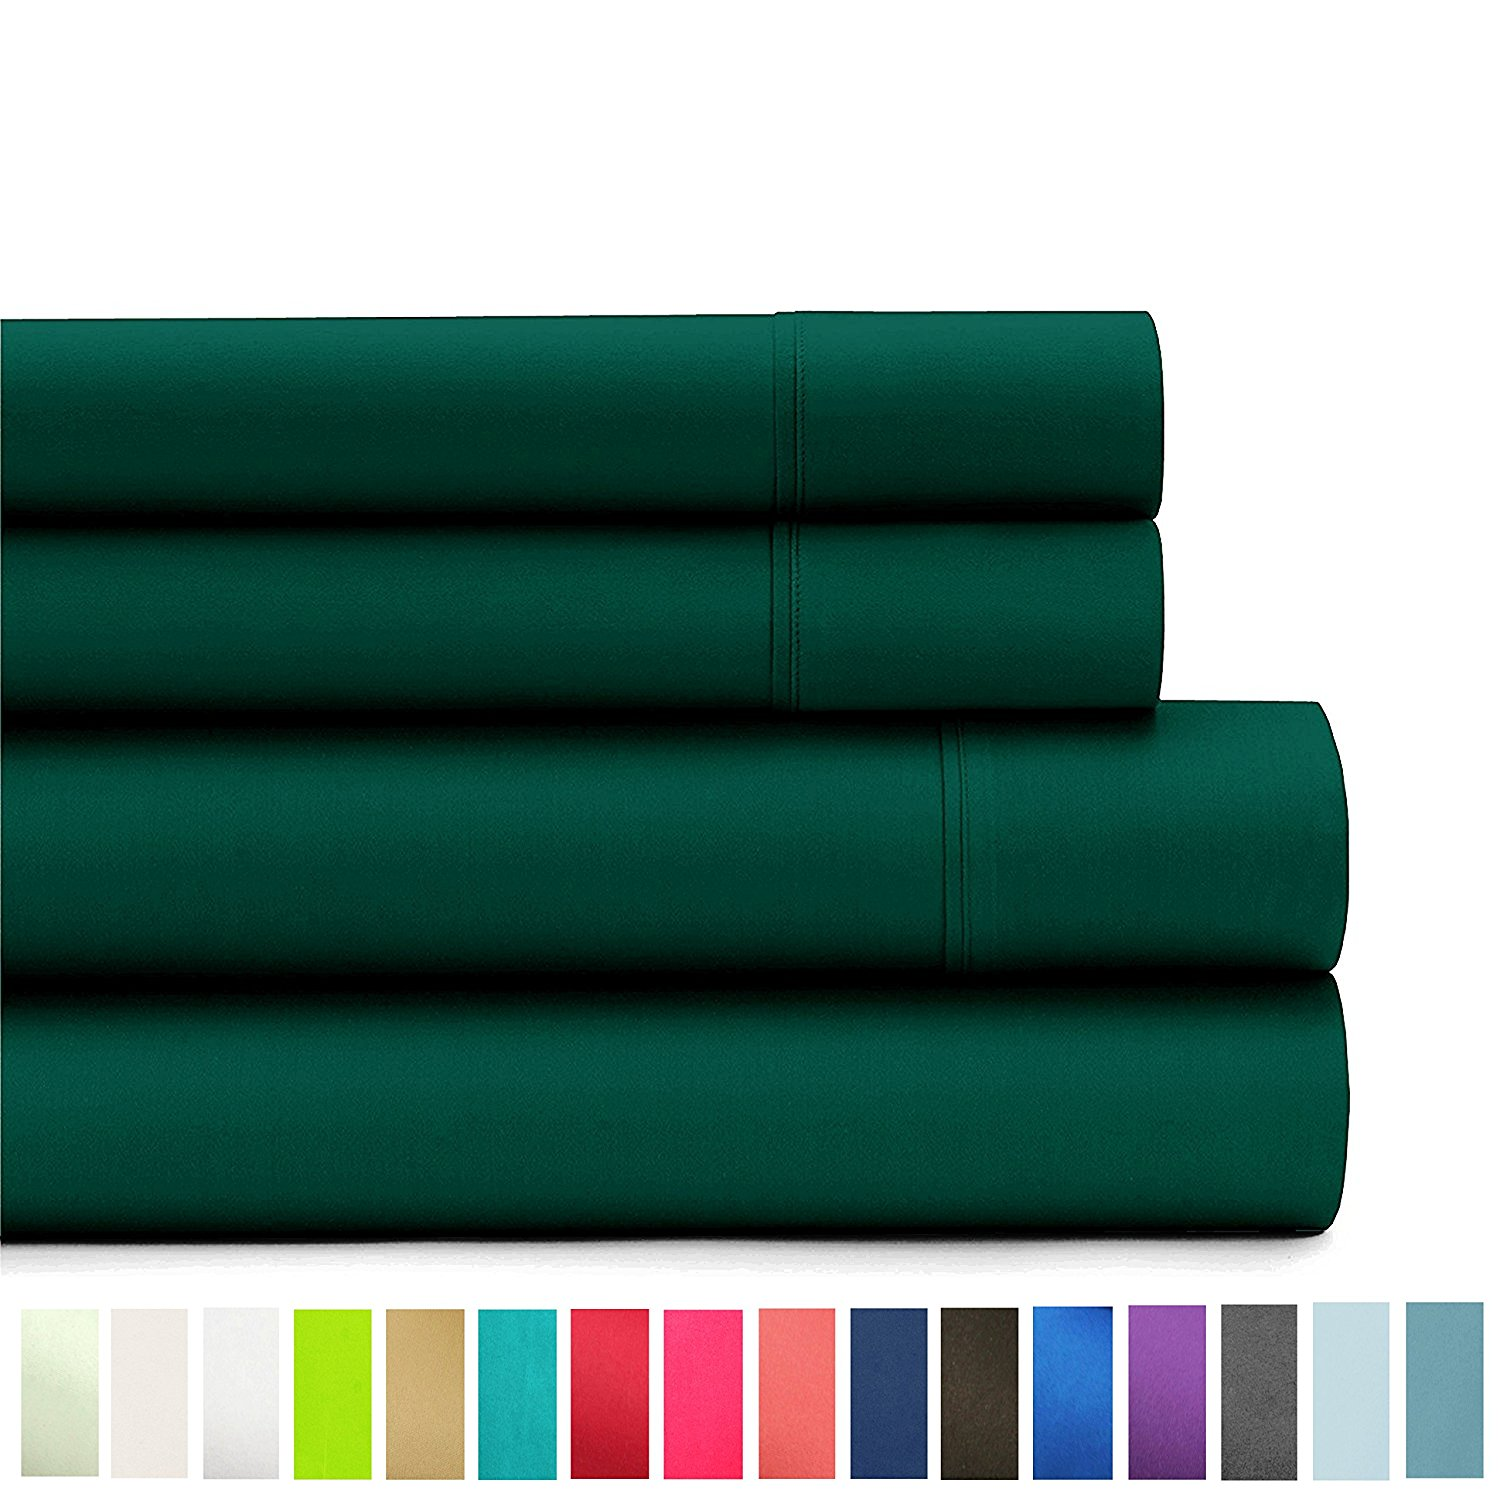 American Home Collection Deluxe 4 Piece Bed Sheet Sets Highest Quality of Brushed Microfiber Wrinkle Resistant Silky Soft Touch (Full, Forest Green)